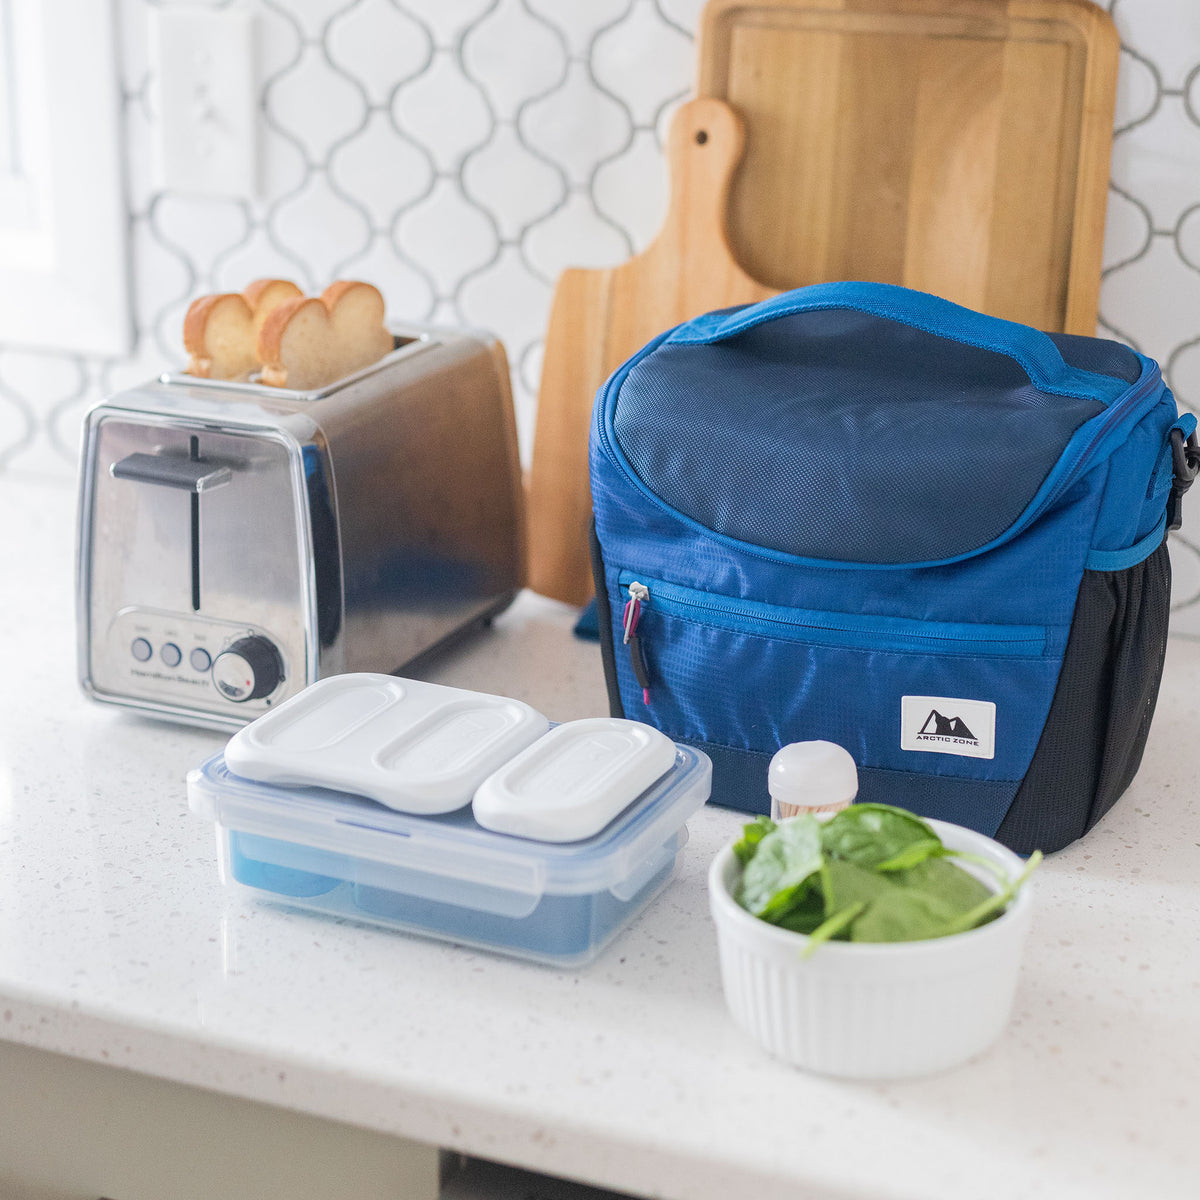 High Performance Meal Prep Day Pack - Blue - Lifestyle, having breakfast before heading to work